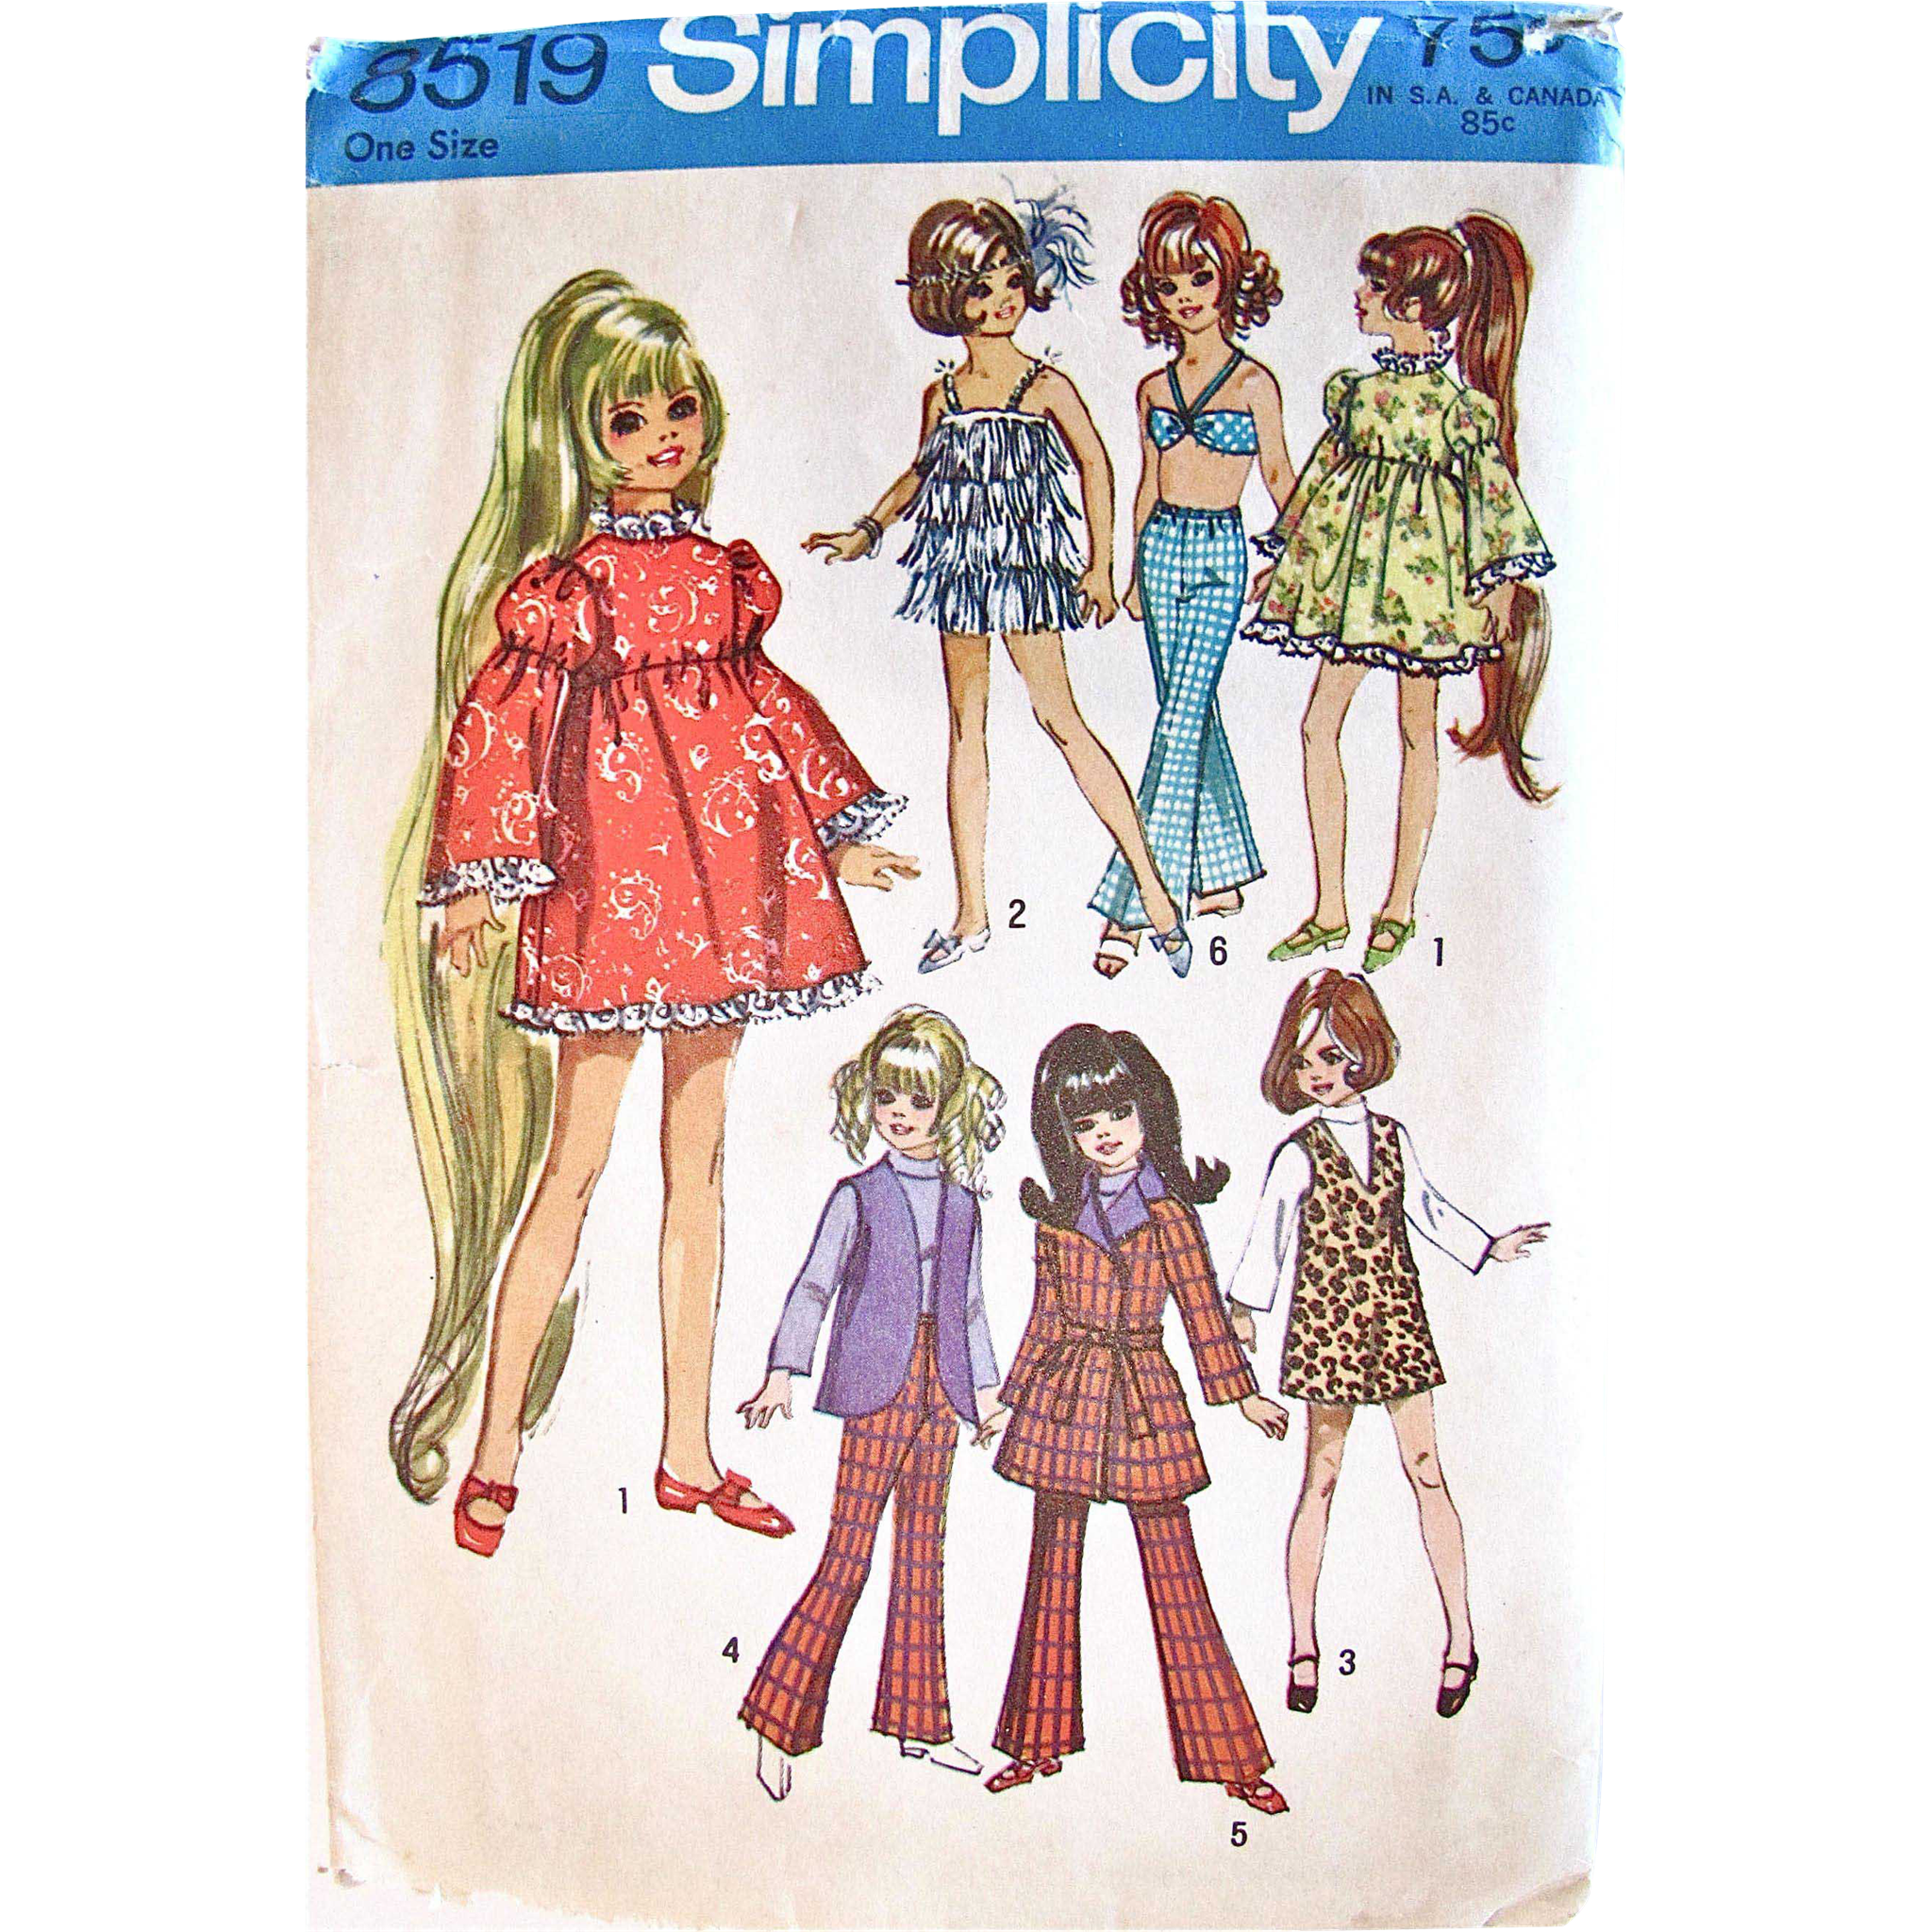 Crissy Doll Wardrobe Pattern, Simplicity 8519, Vintage 1969, Fits 17-1/2 Inch Teen Dolls, Partially Cut and Complete